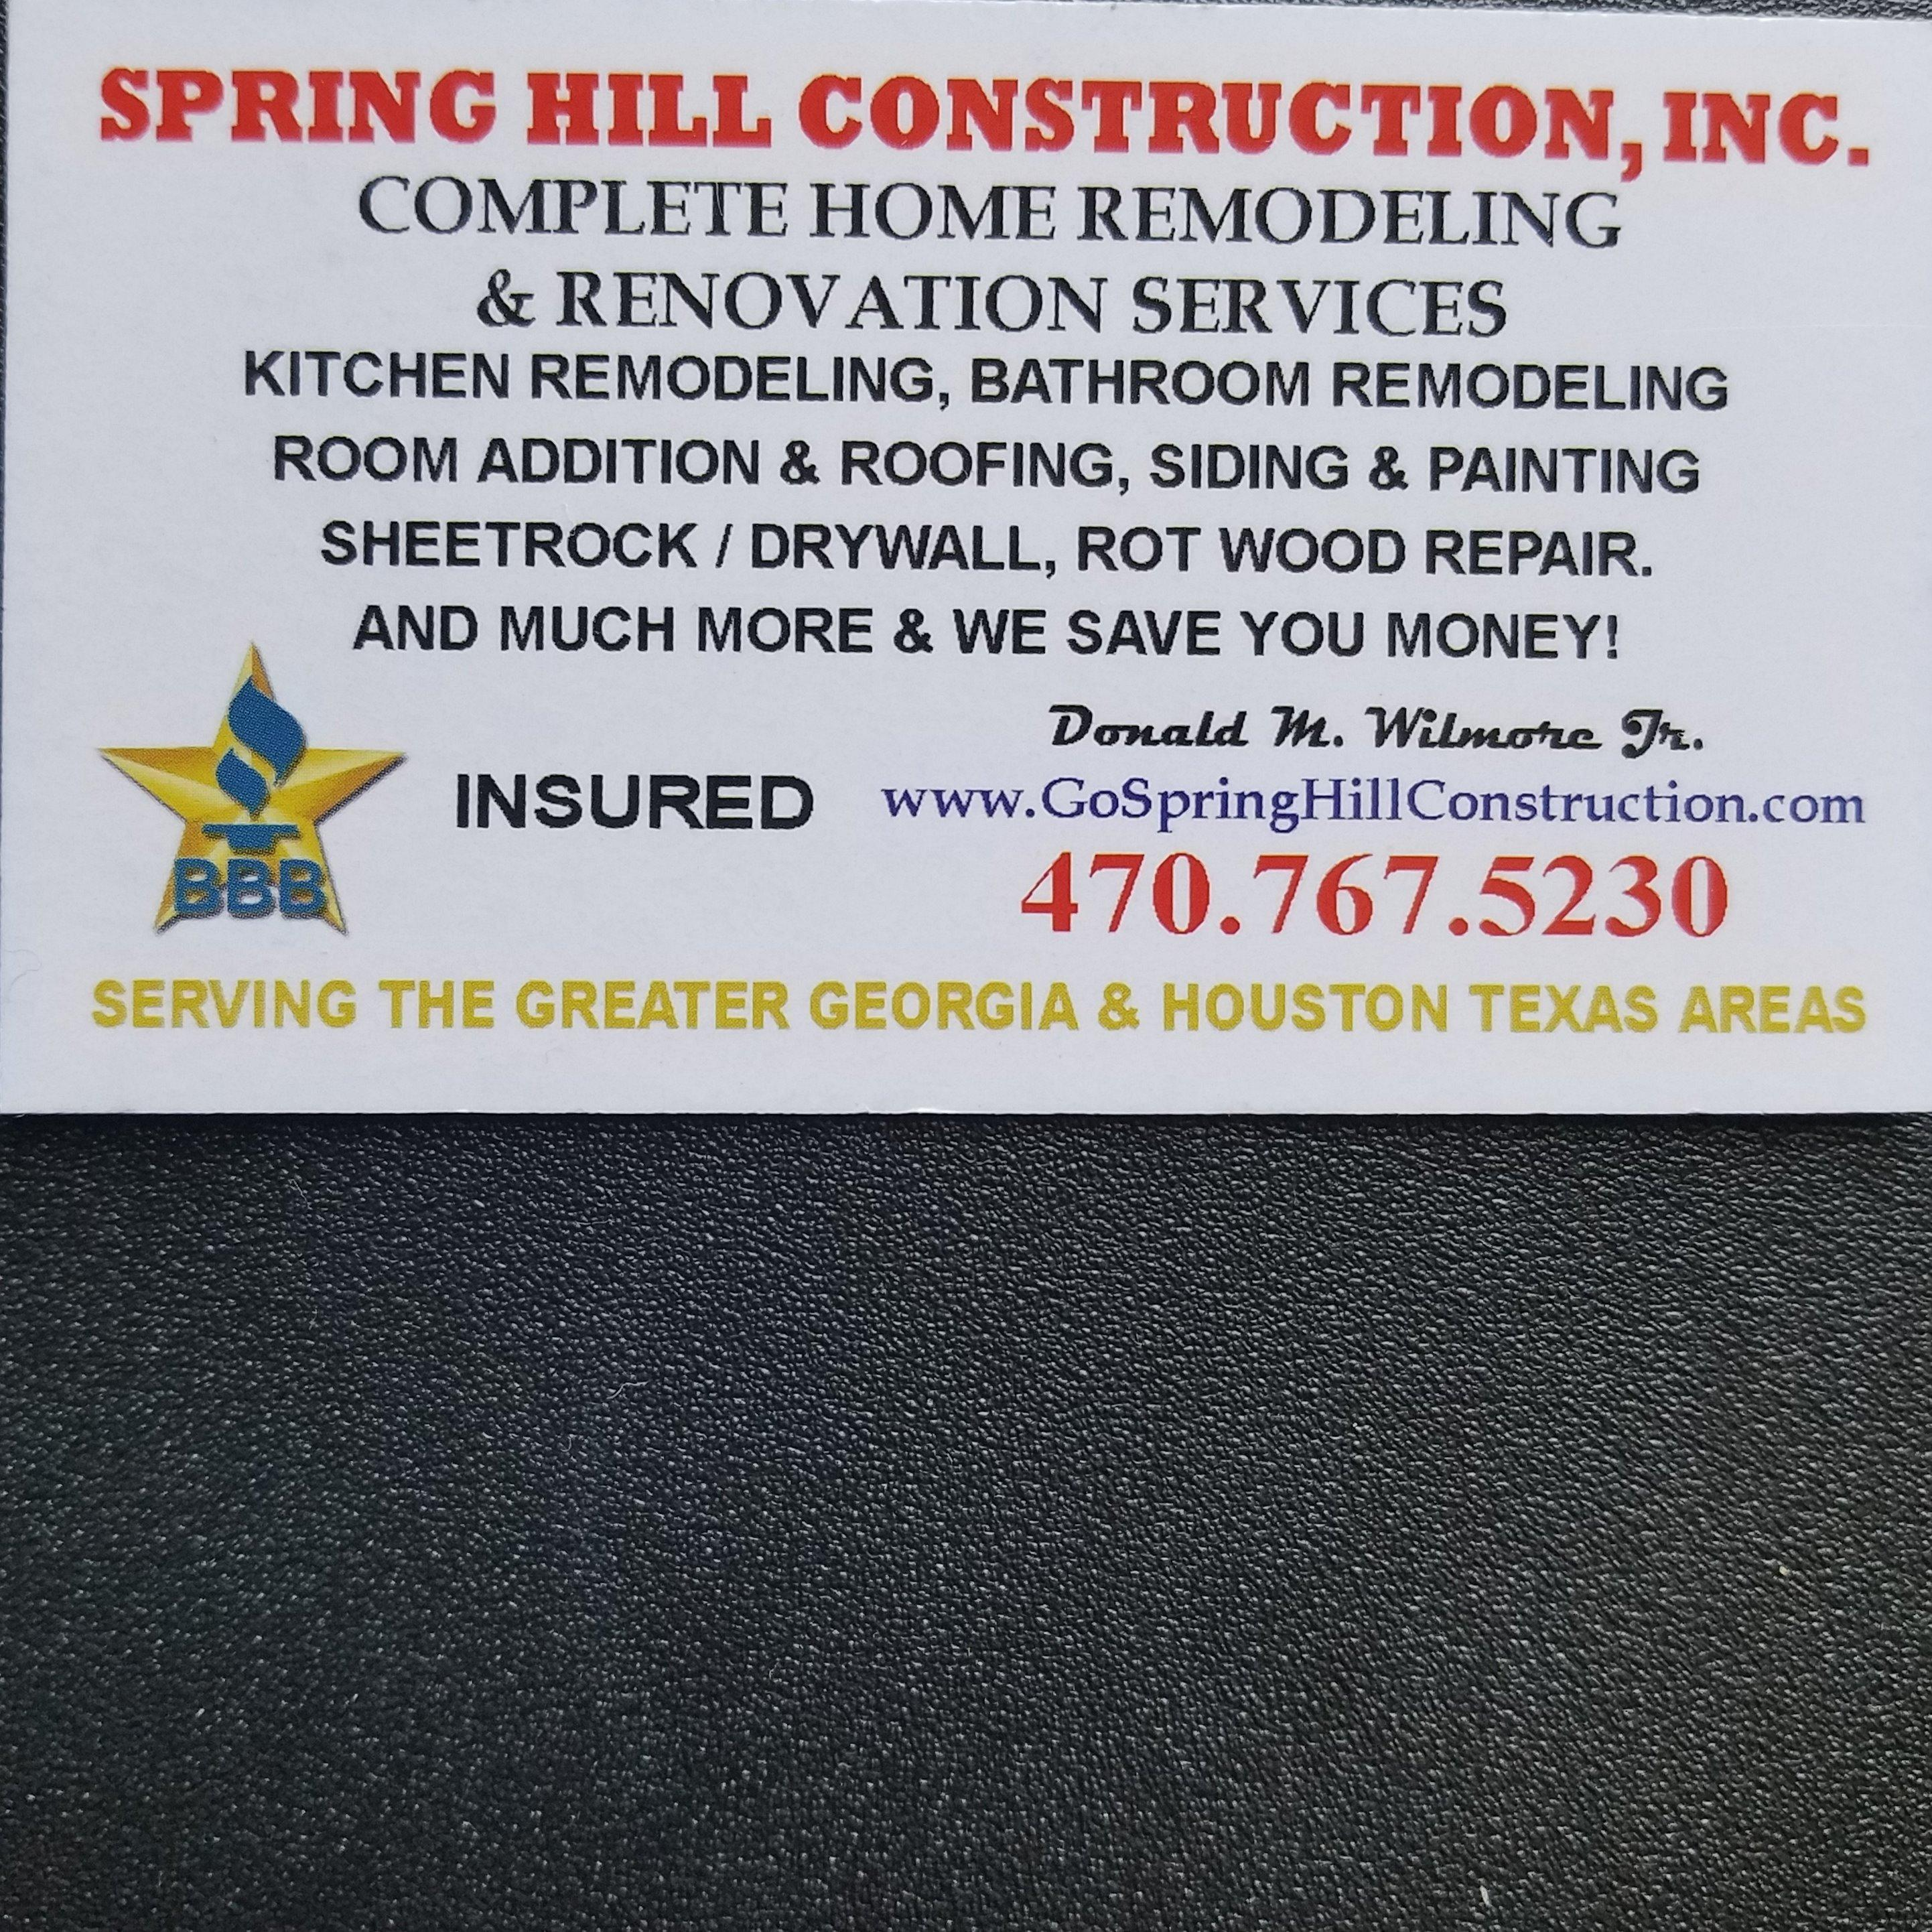 Spring Hill Construction, Inc.